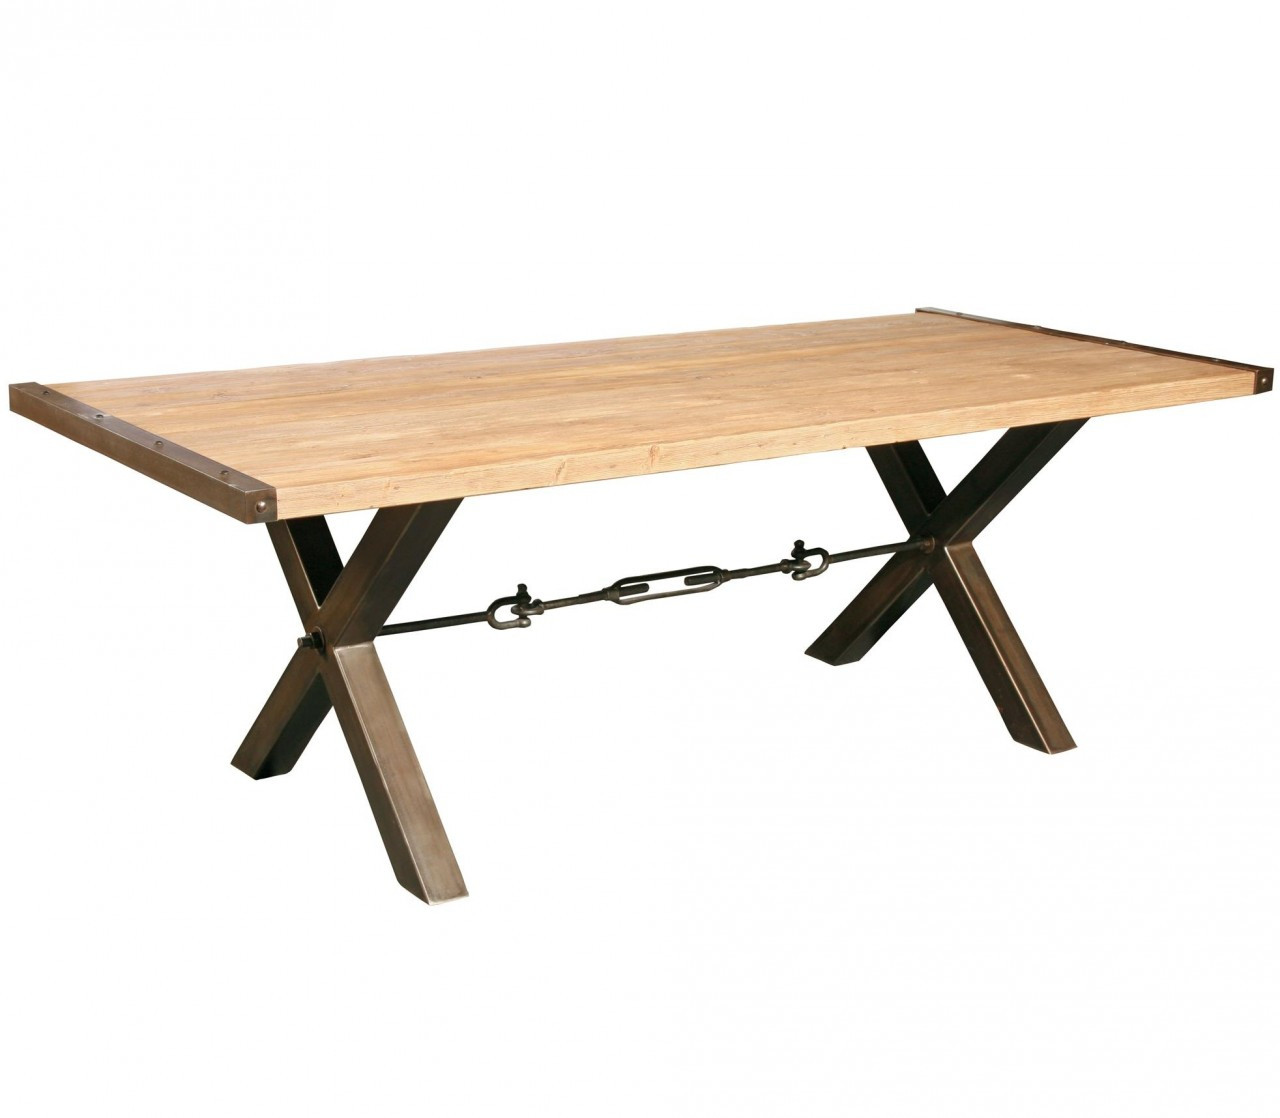 Turnbuckle Dining Bench